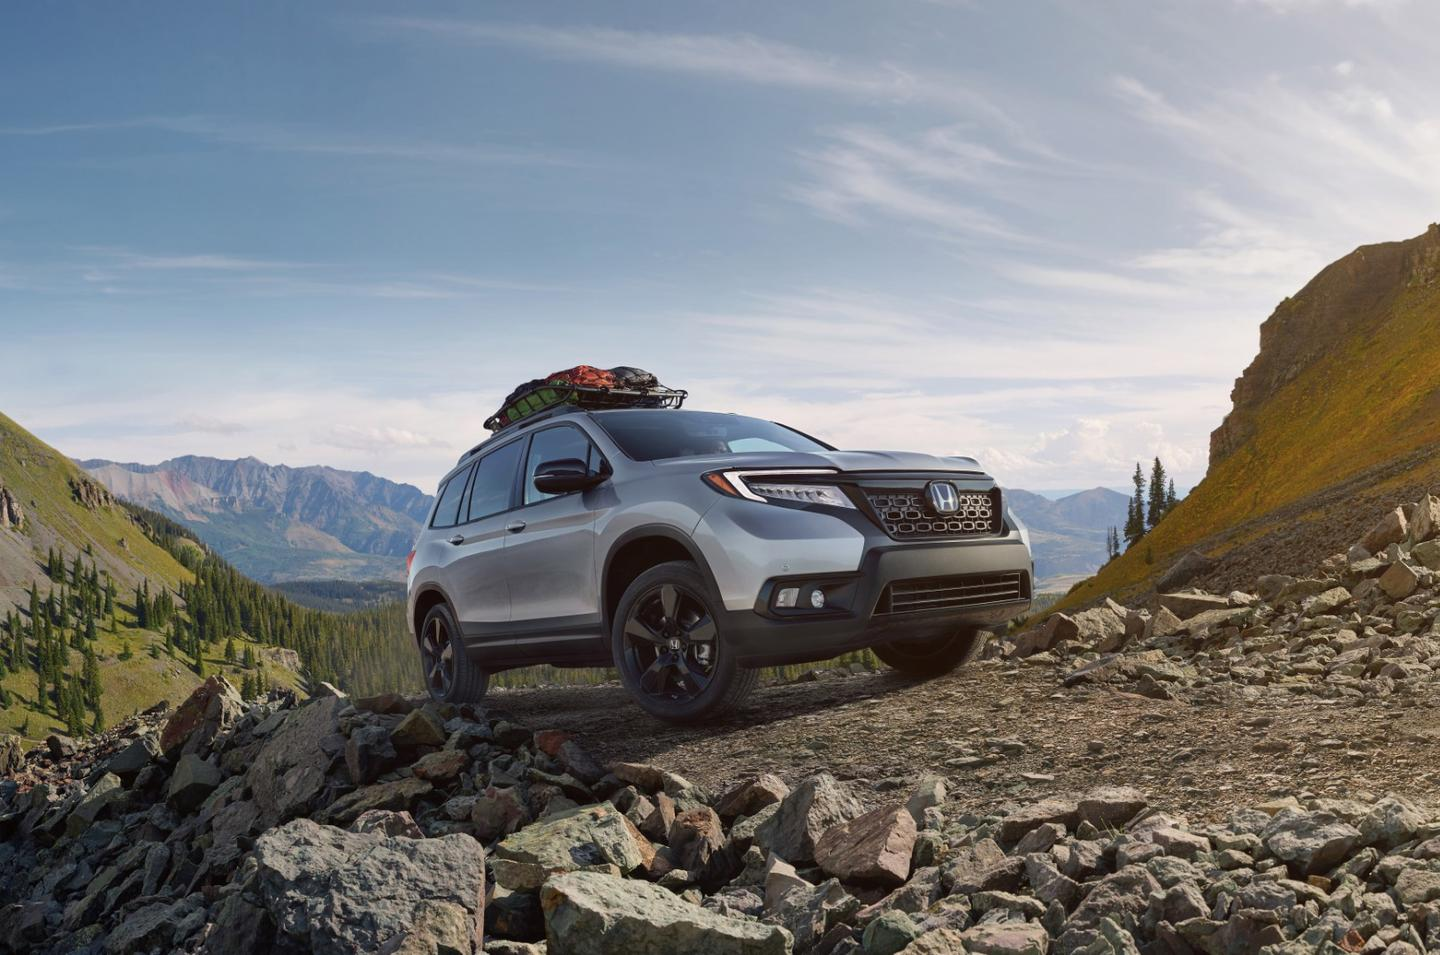 The 2019 Honda Passport is a five-passenger sport utility aimed towards a more adventurous, outdoorsy crowd